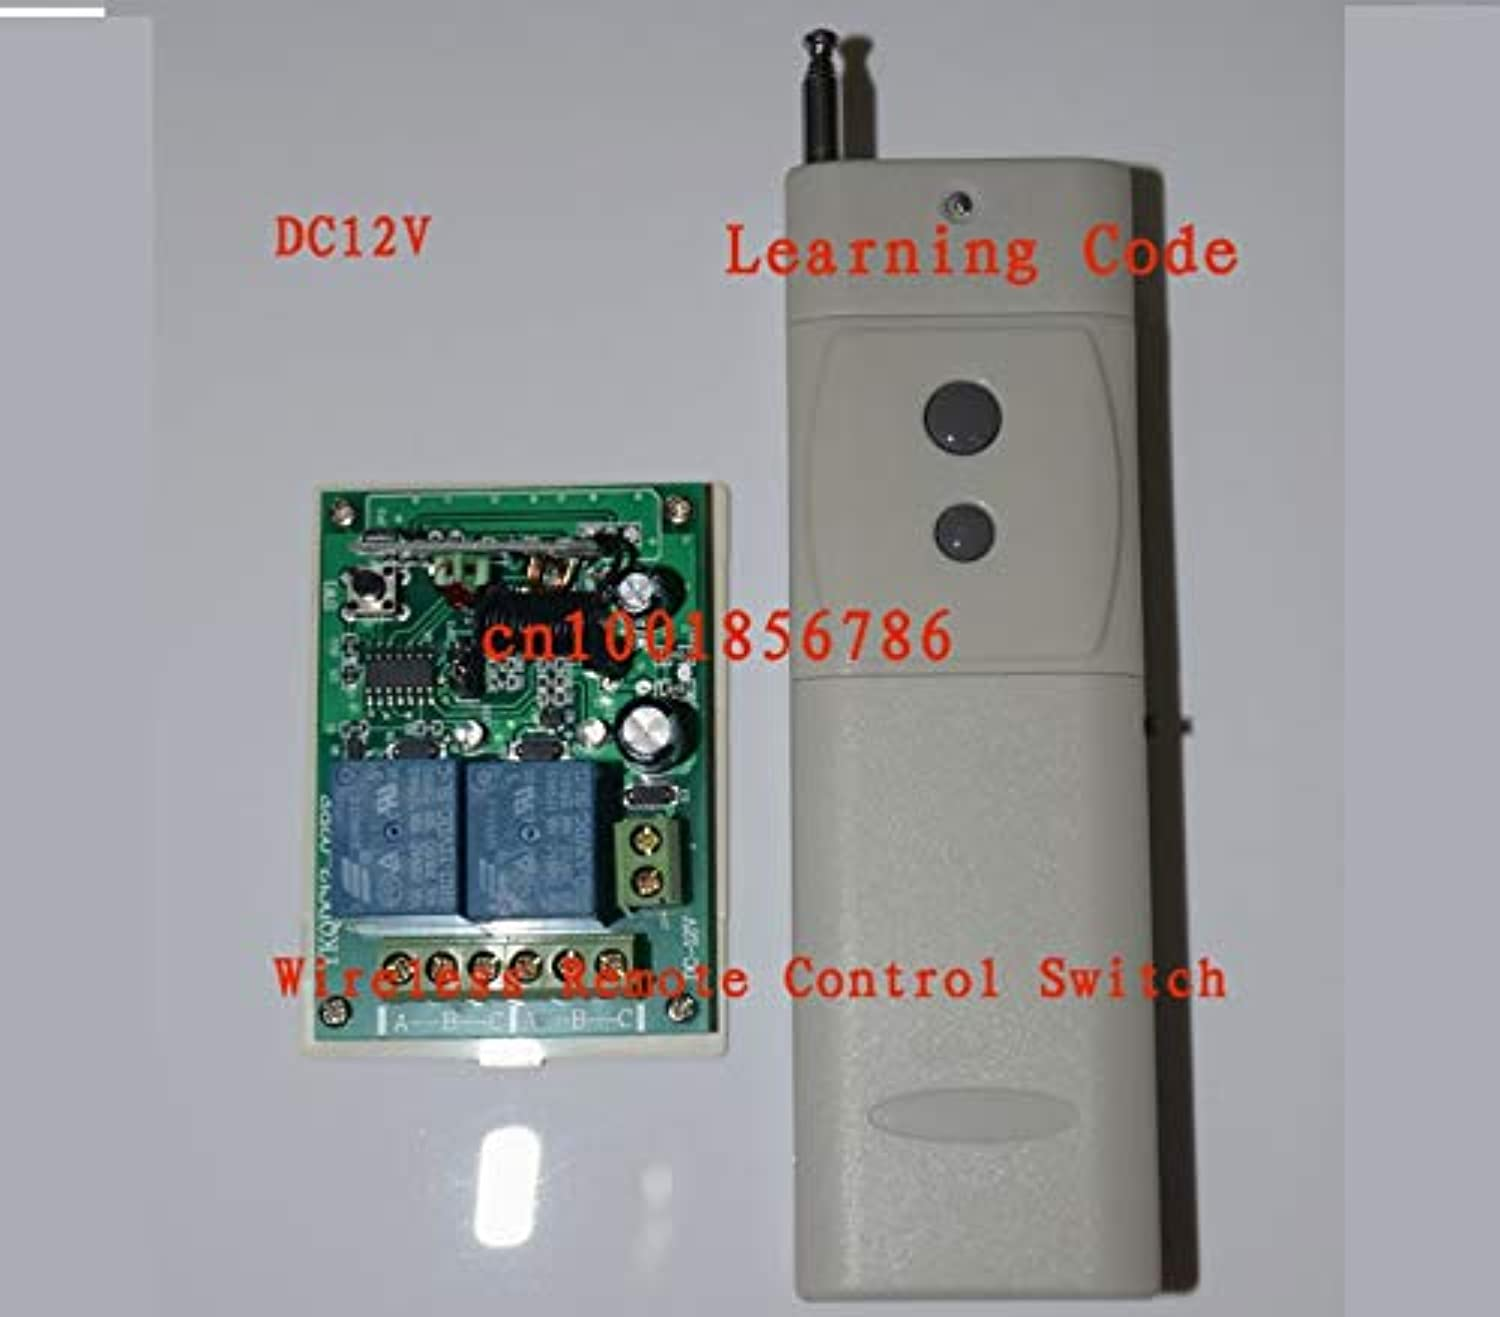 12V 2CH 3000M RF Wireless Remote Control Switch System Receiver & Transmitter Learning Code Toggle Momentary